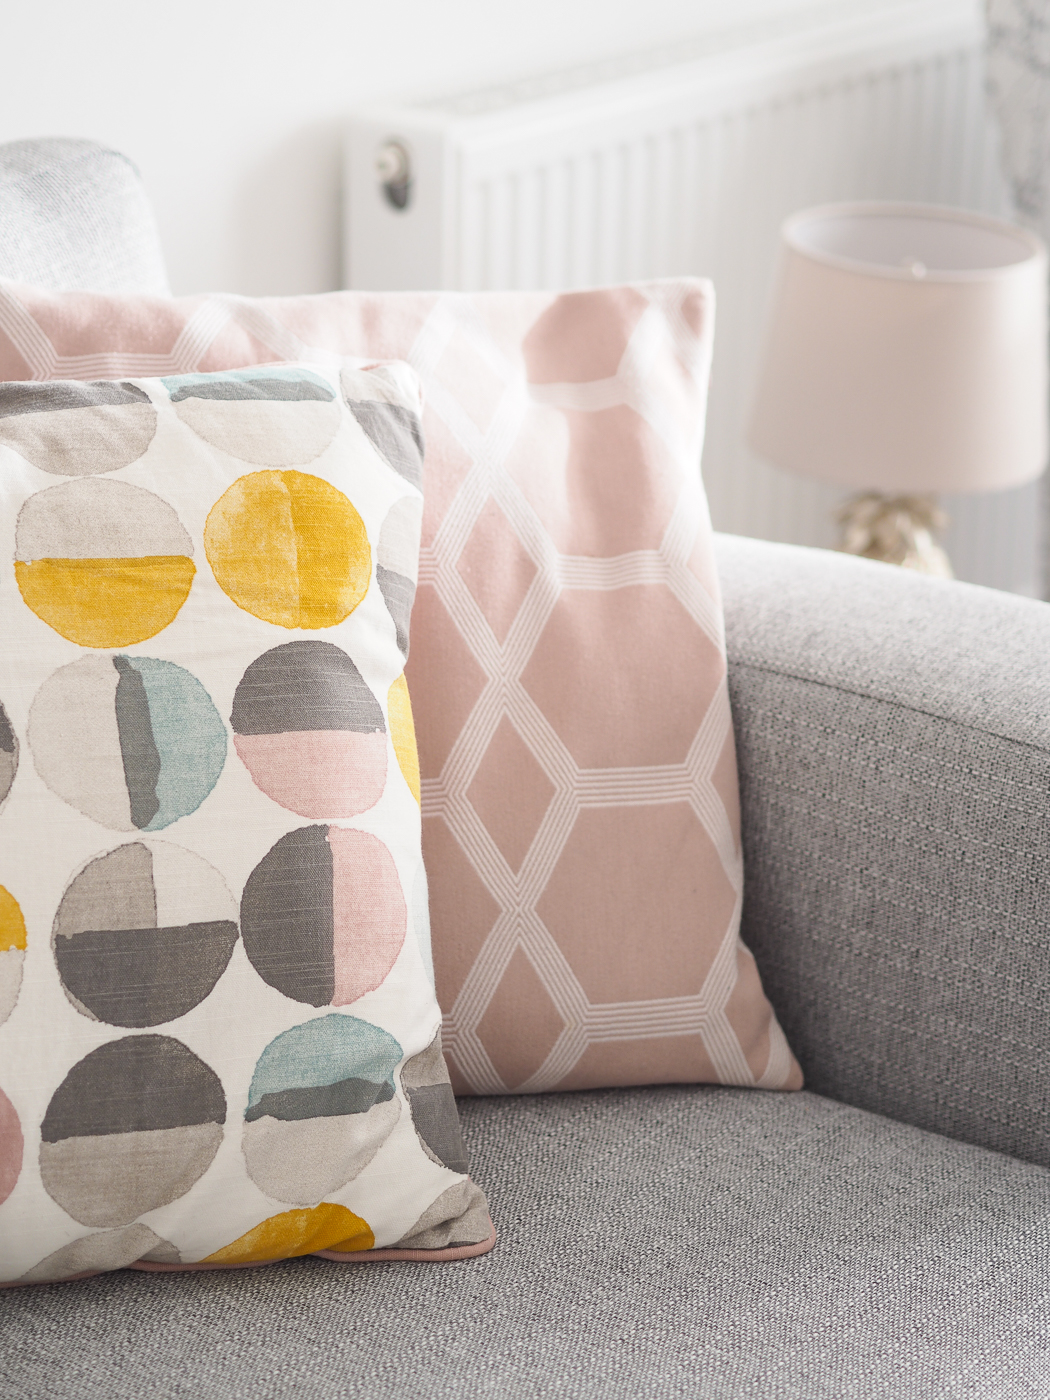 living room tour sainsbury and H&m cushions pink